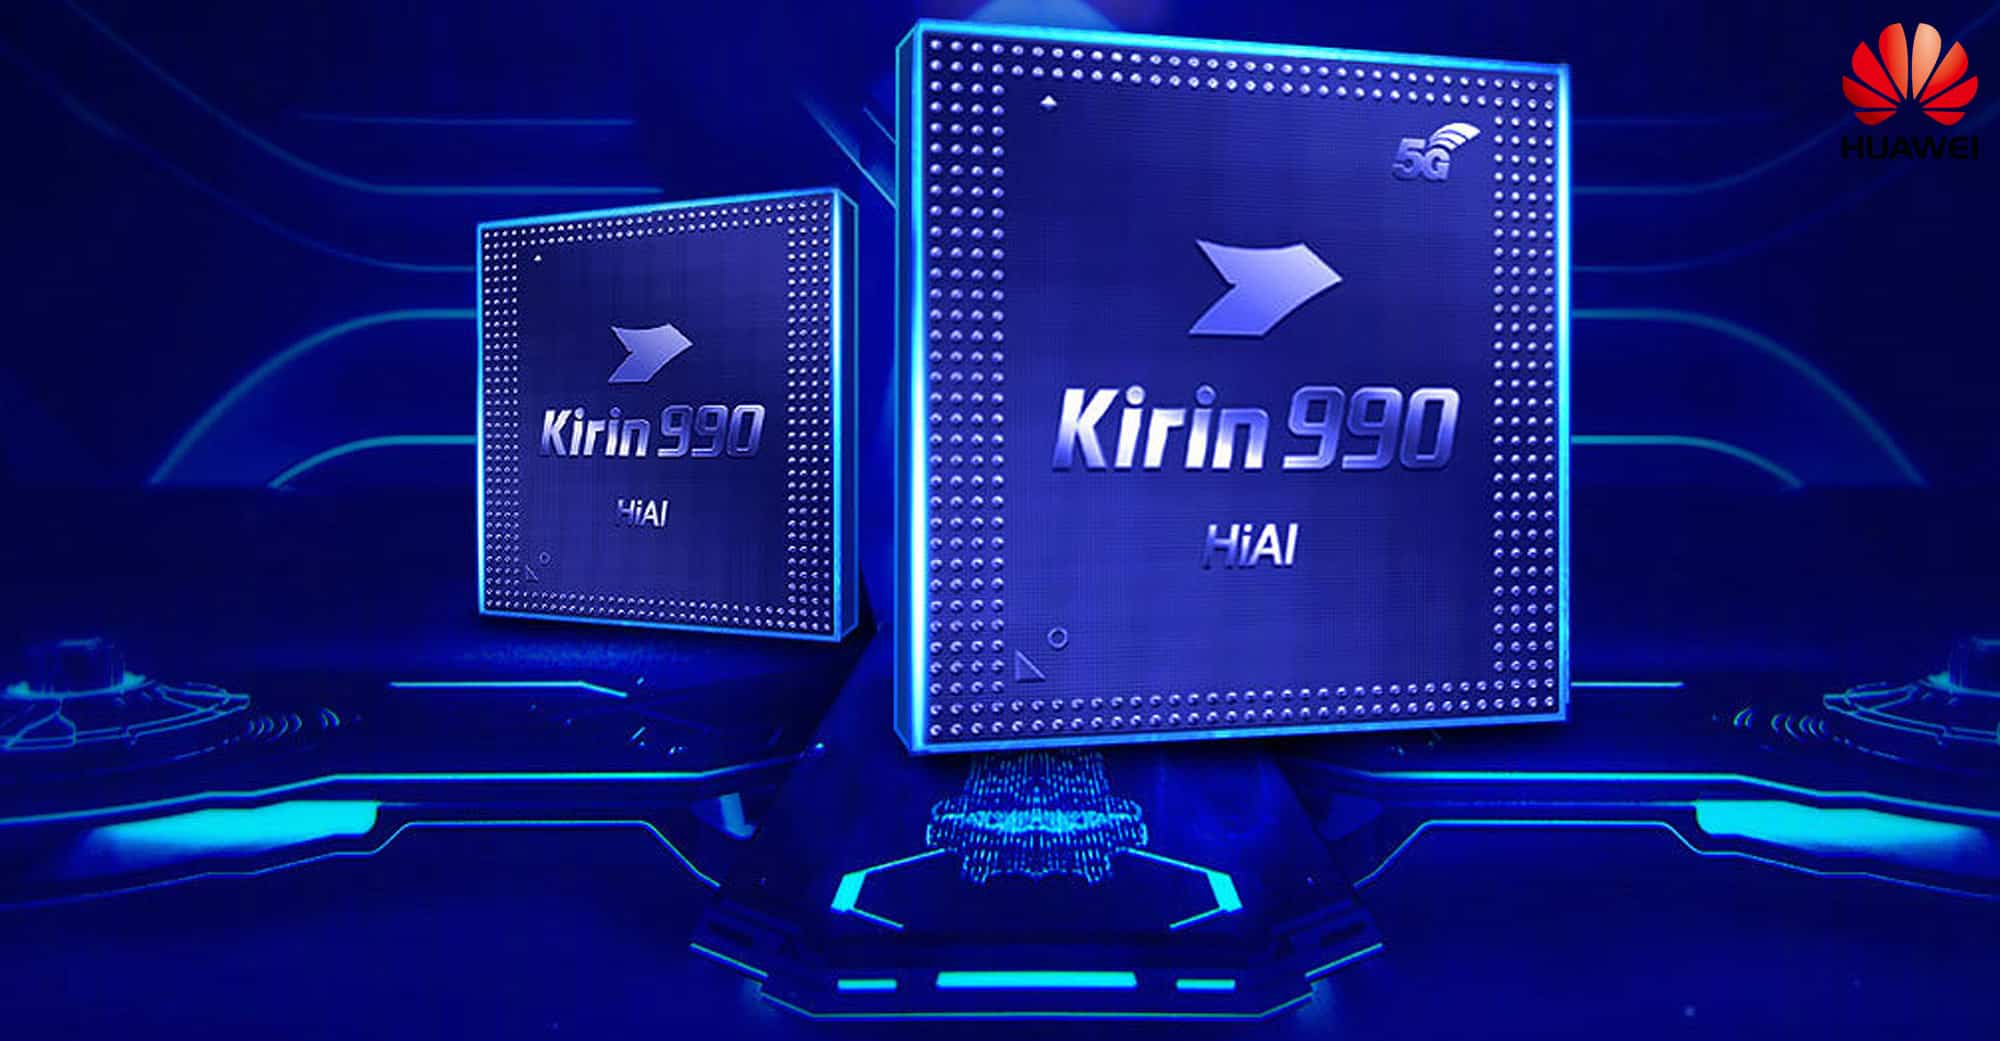 Kirin 990 could not surpass Snapdragon 855 + on AnTuTu Benchmark test